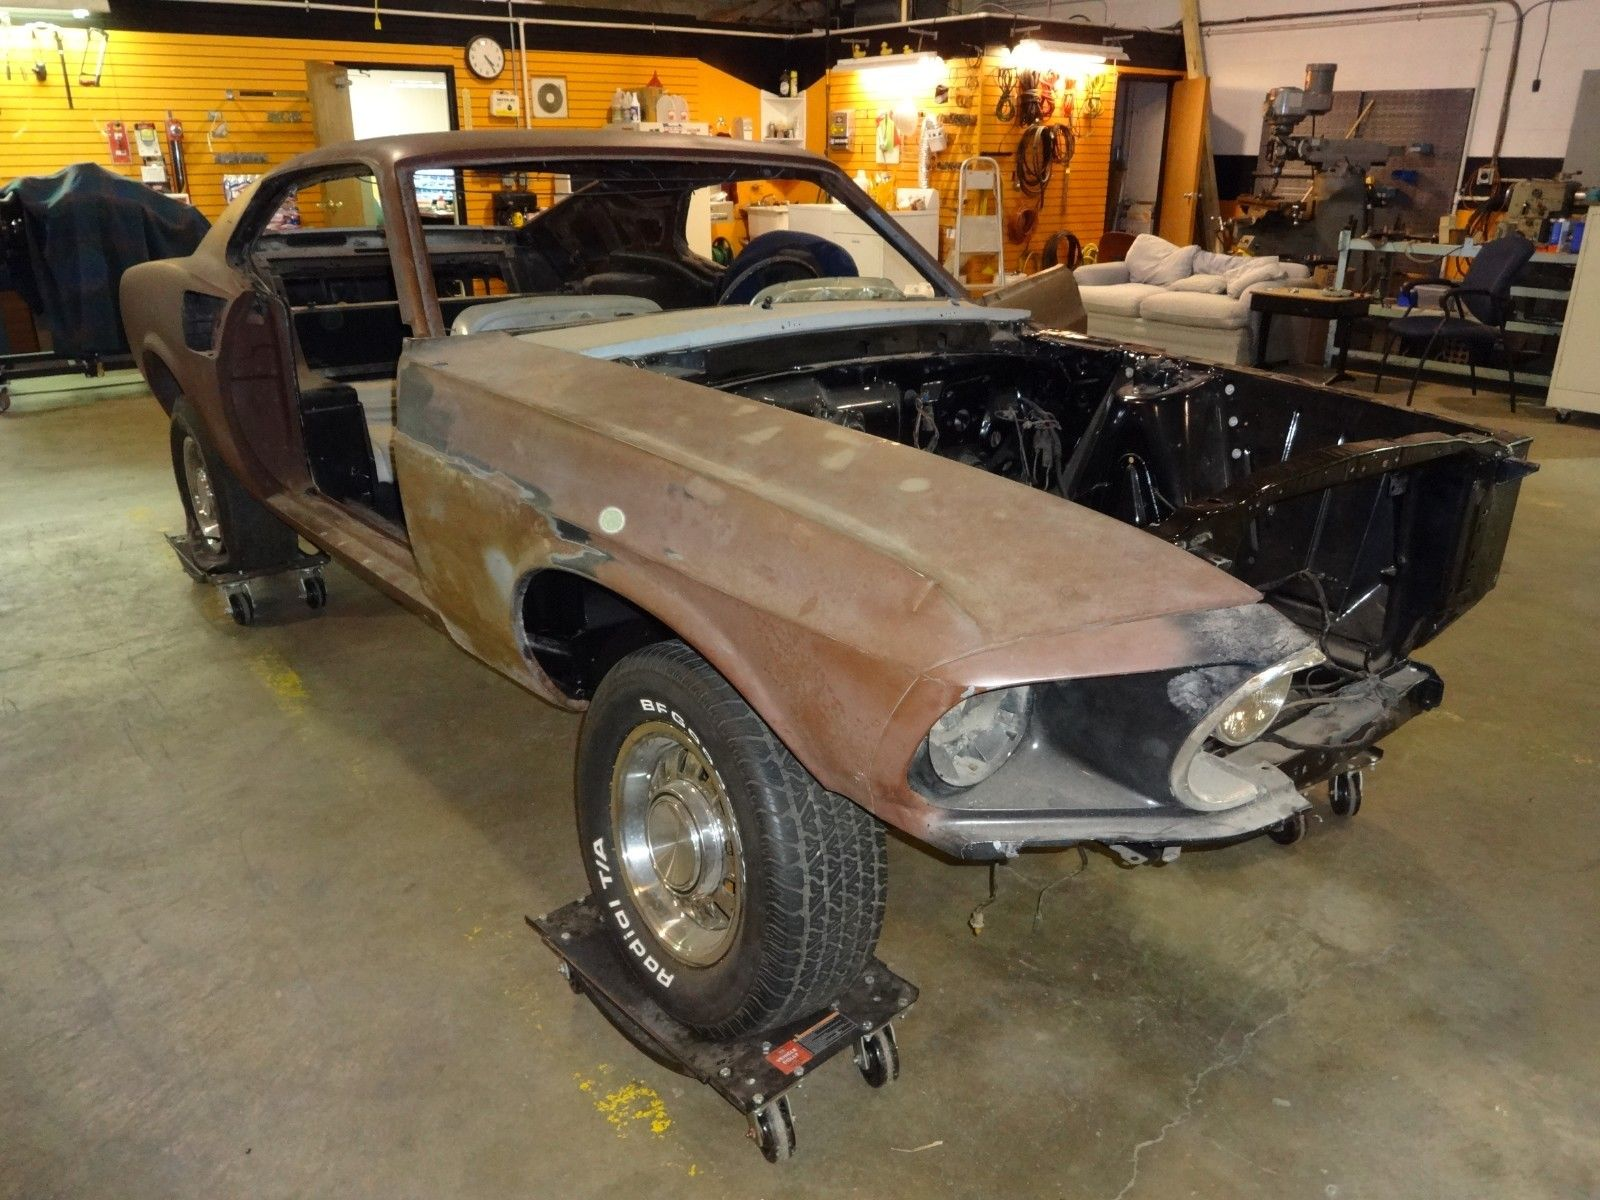 Amazing 1969 Ford Mustang Mach 1 1969 Mustang Mach 1 428 CJ Cobra Jet Q  Code 4 Speed Project 2 Cars 2018